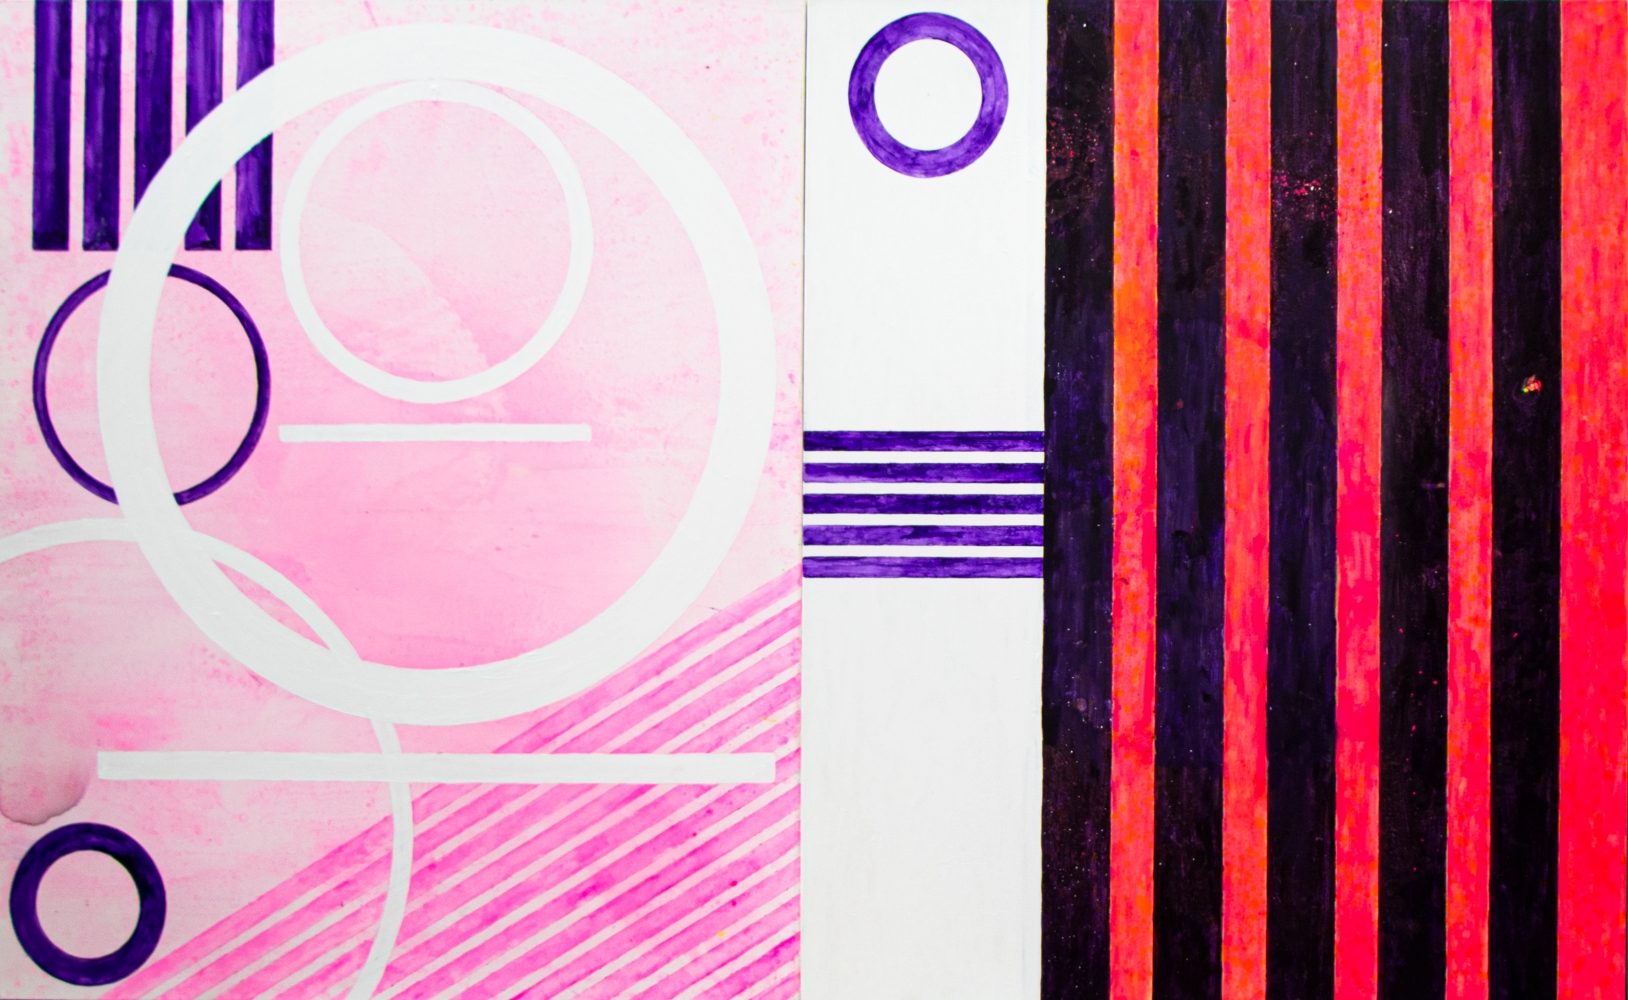 J. Steven Manolis, Miami Joy, 2020, 72 x 120 inches, Acrylic painting on canvas, Geometric Abstract Art, Miami Wall art For sale at Manolis Projects Art Gallery, Miami Fl